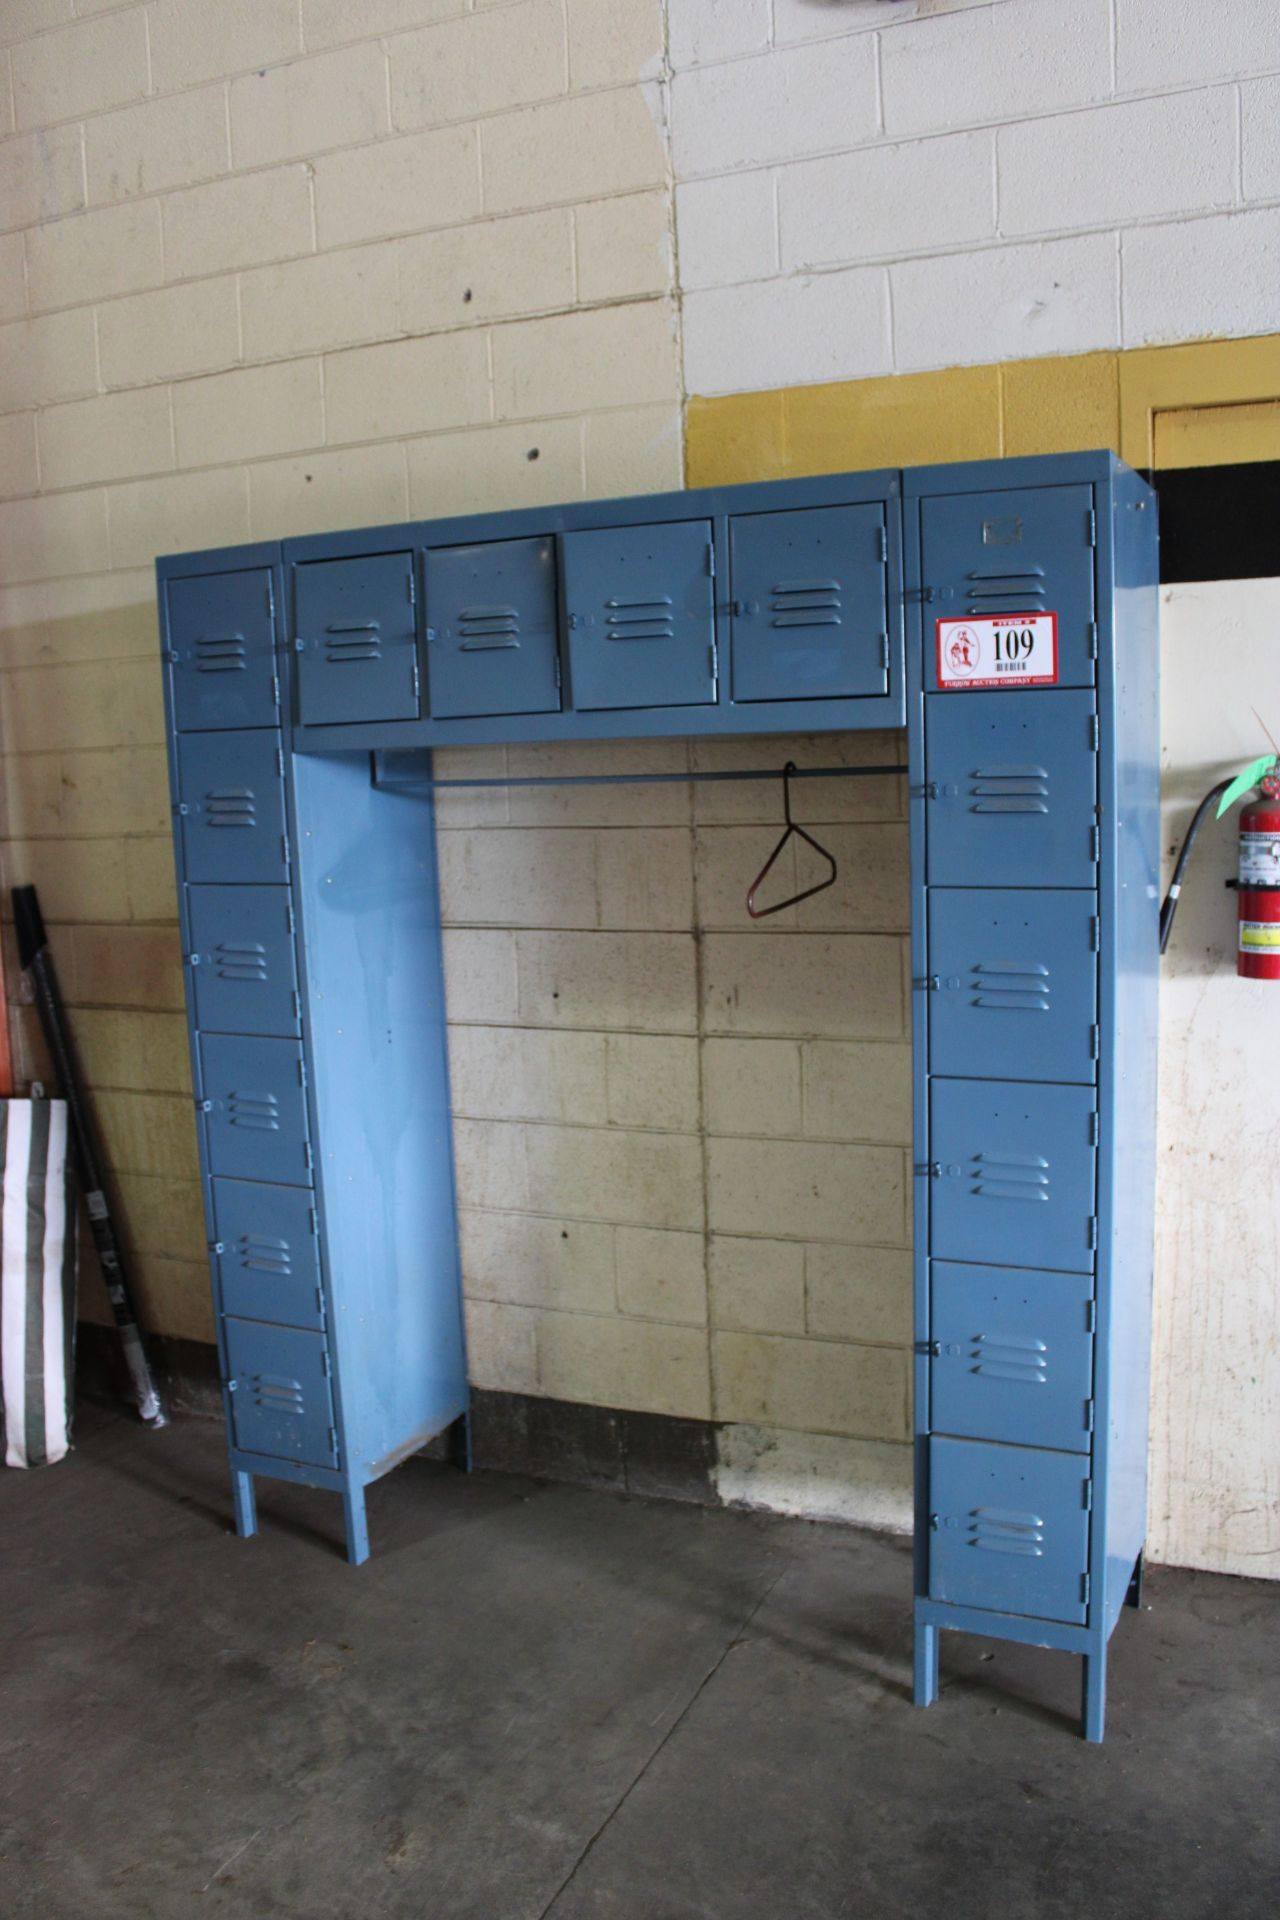 Global Industrial 16 Compartment Employee Lockers, 12 x 18 x 12, Blue, Like new with locking